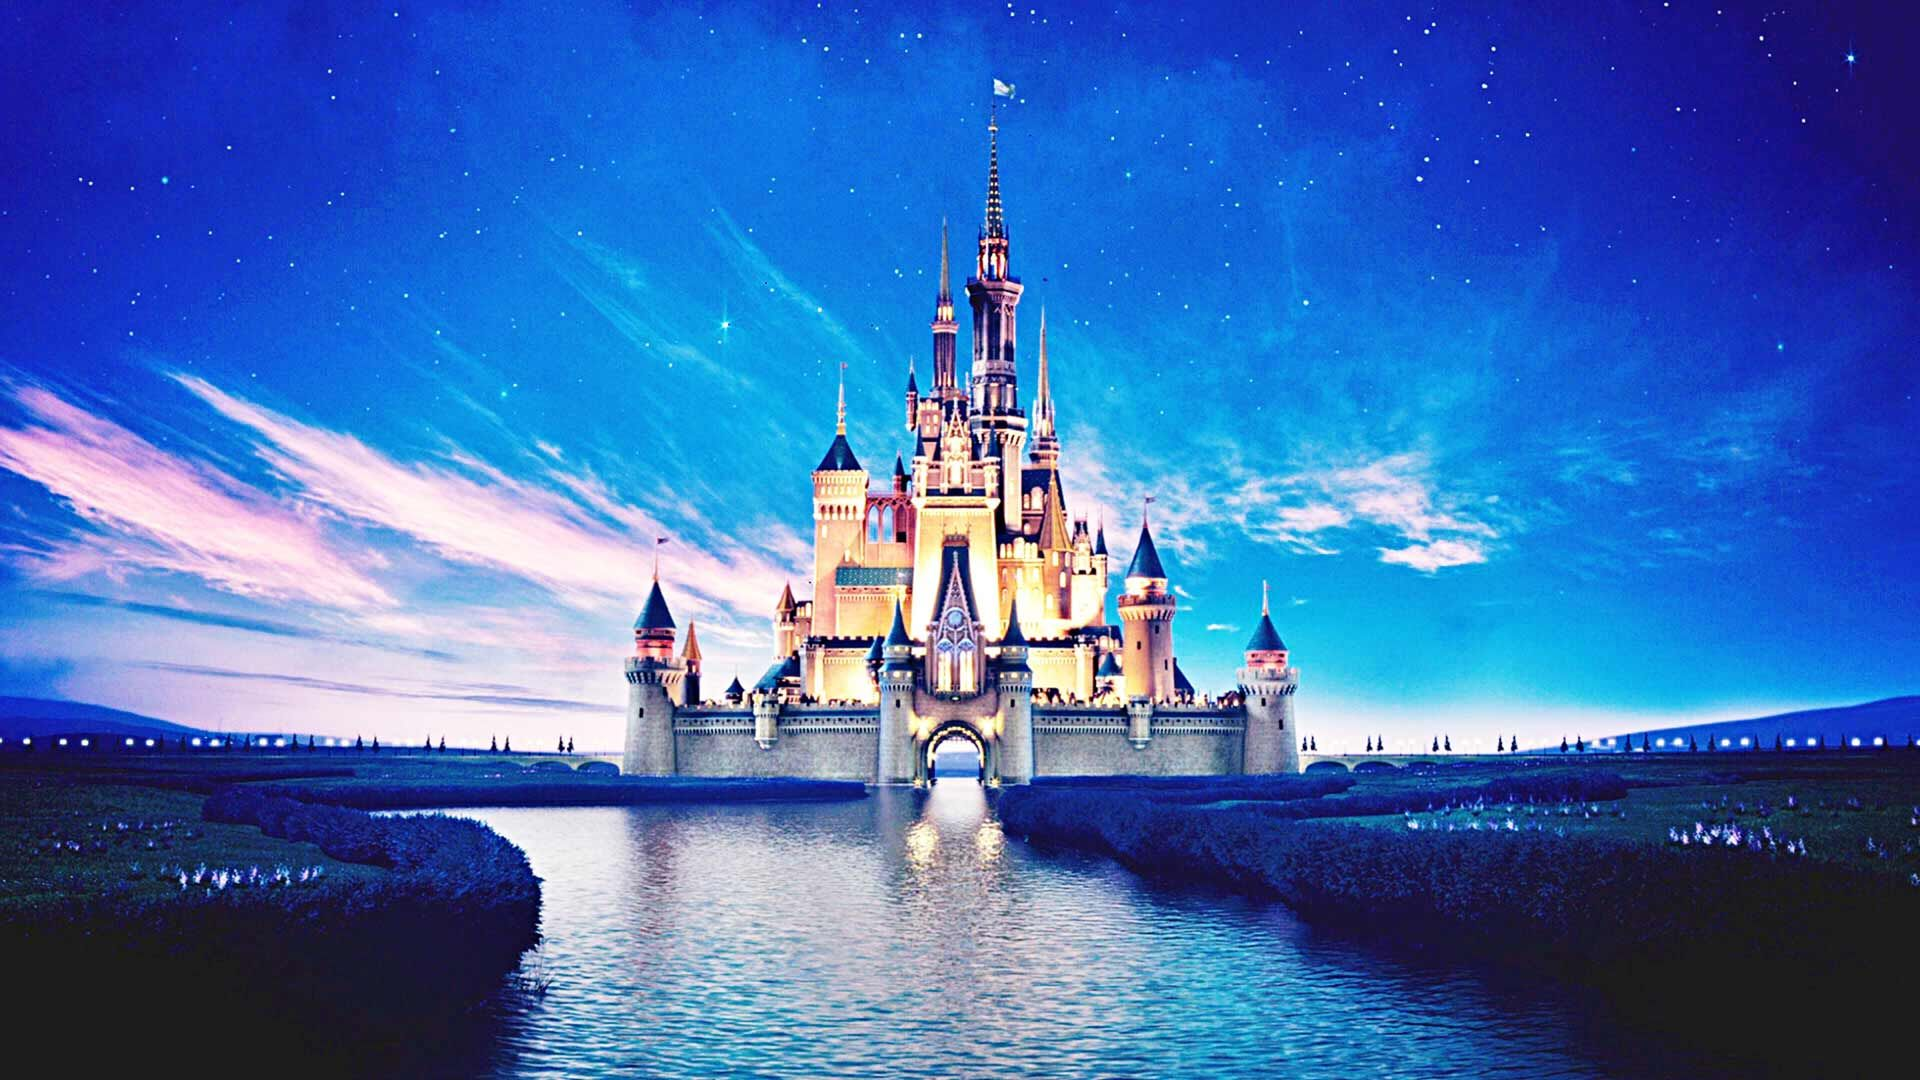 Fondos De Pantalla Para Computadora Google Search Disney Desktop Wallpaper Disney Background Disney Wallpaper